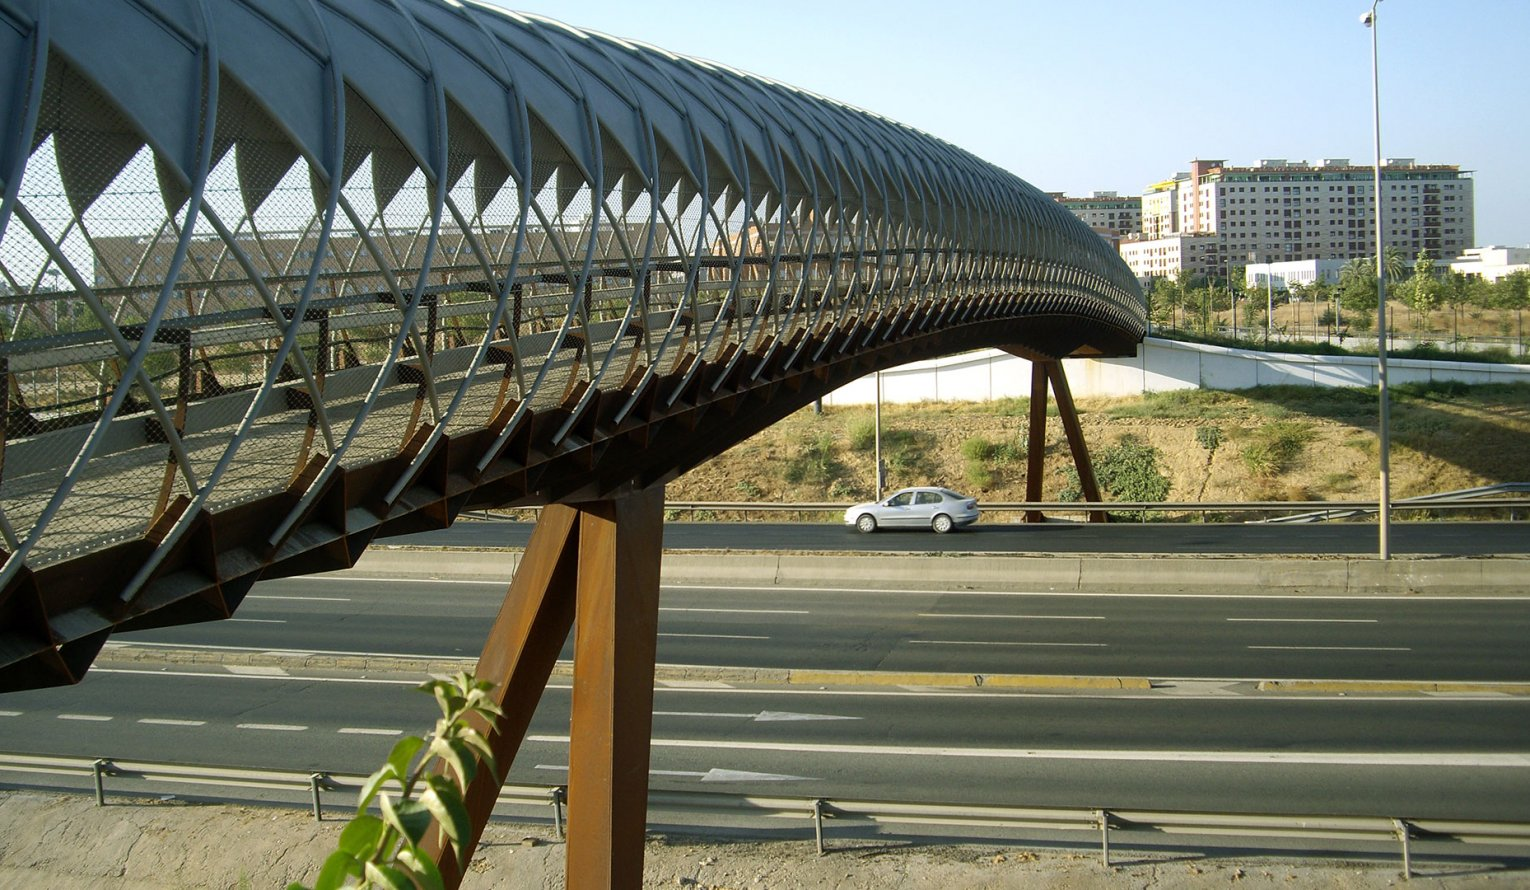 Bridge over SE-30-Campus Palmas Altas